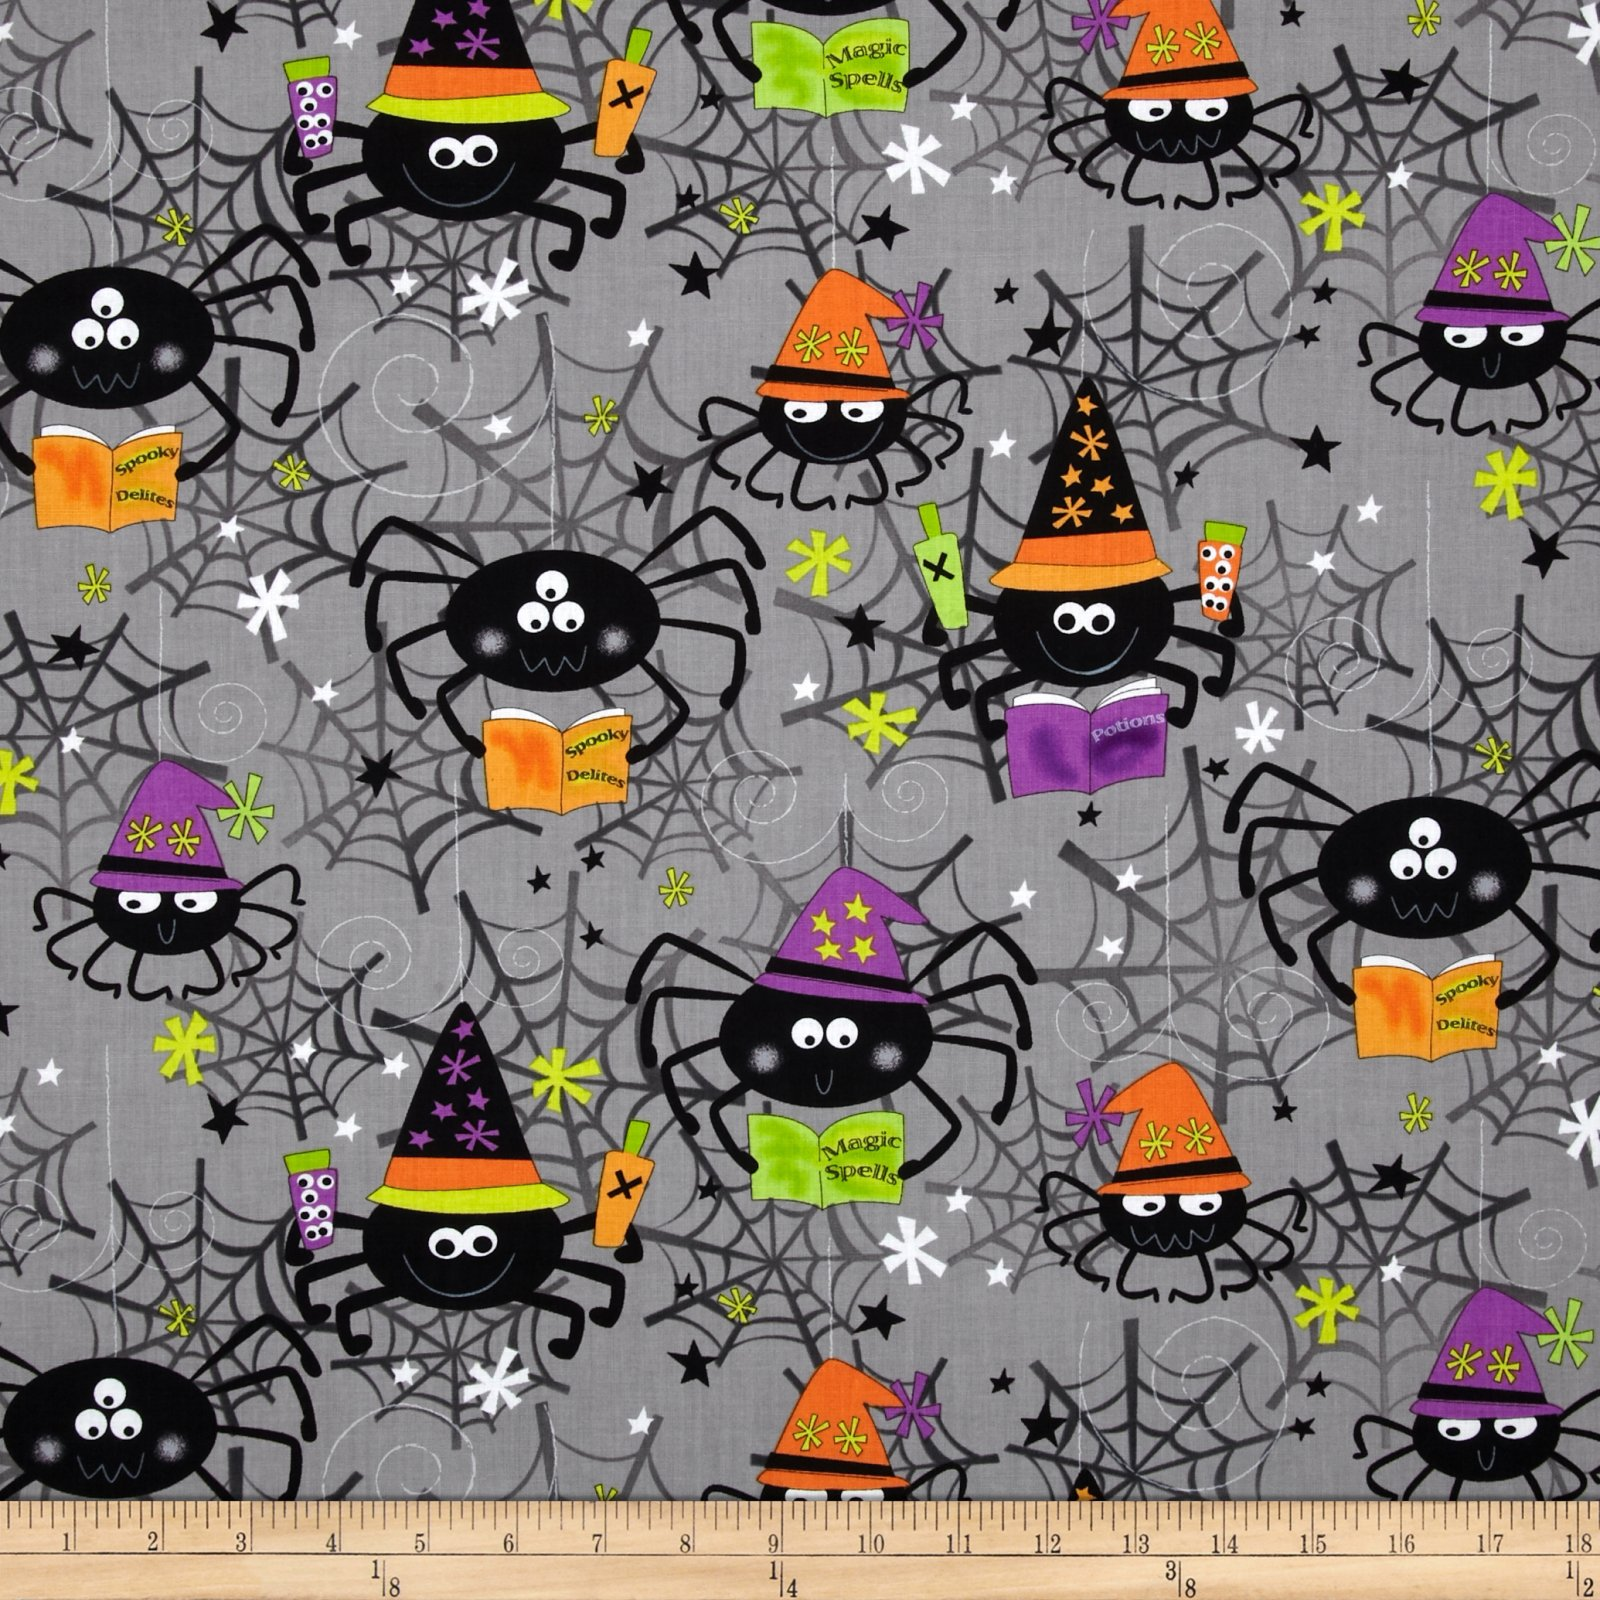 Spooktacular II - spiders on gray